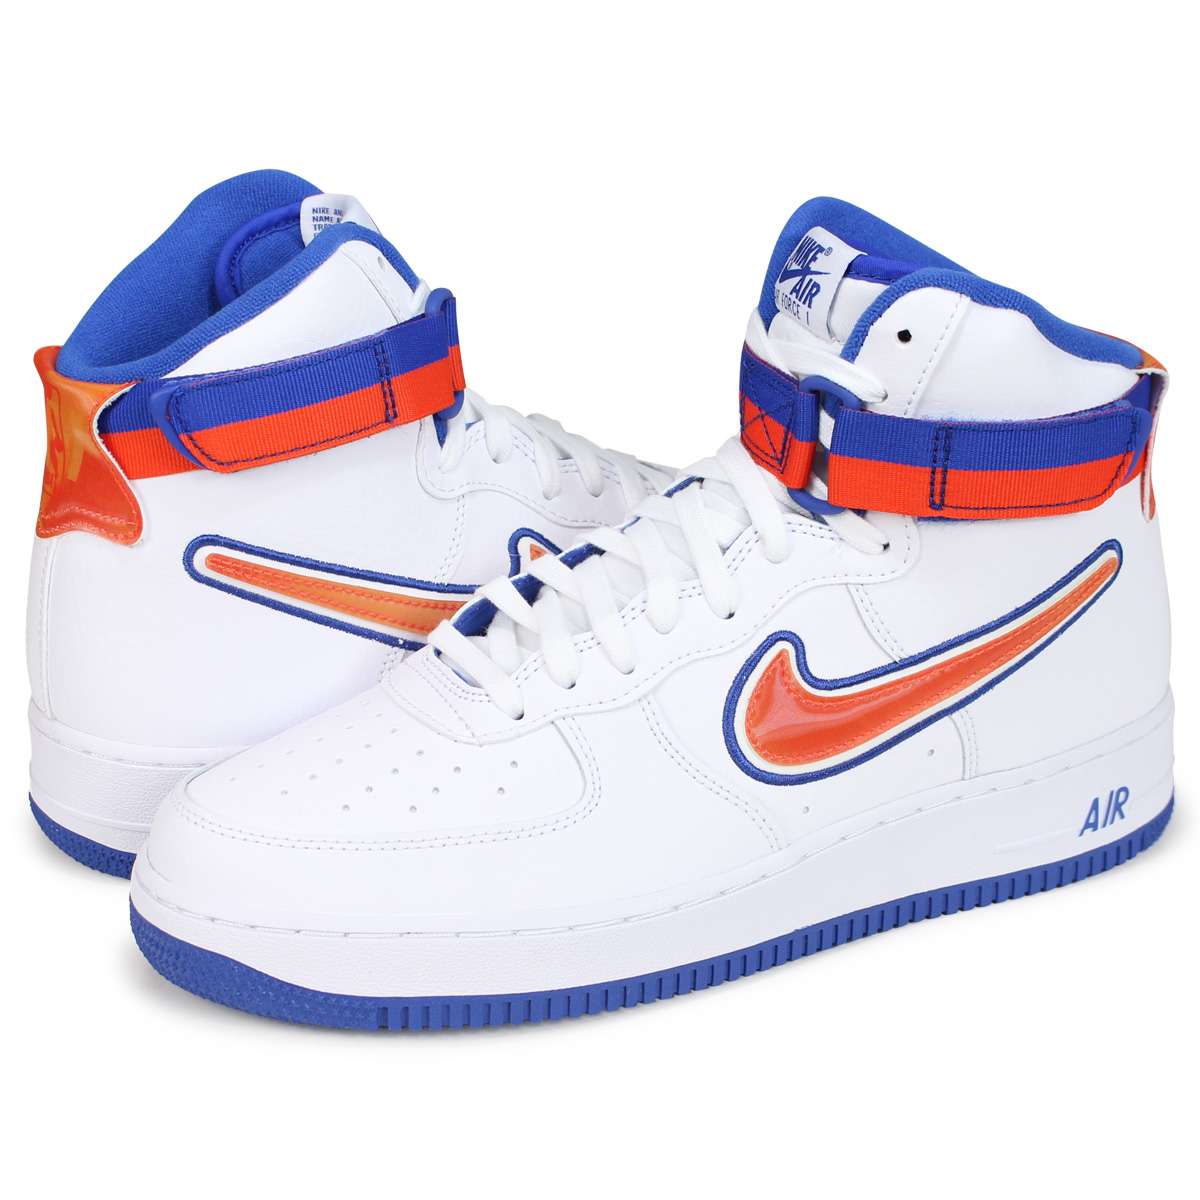 d8a513af910 Whats up Sports  NIKE Nike air force 1 high sneakers men AIR FORCE 1 ...